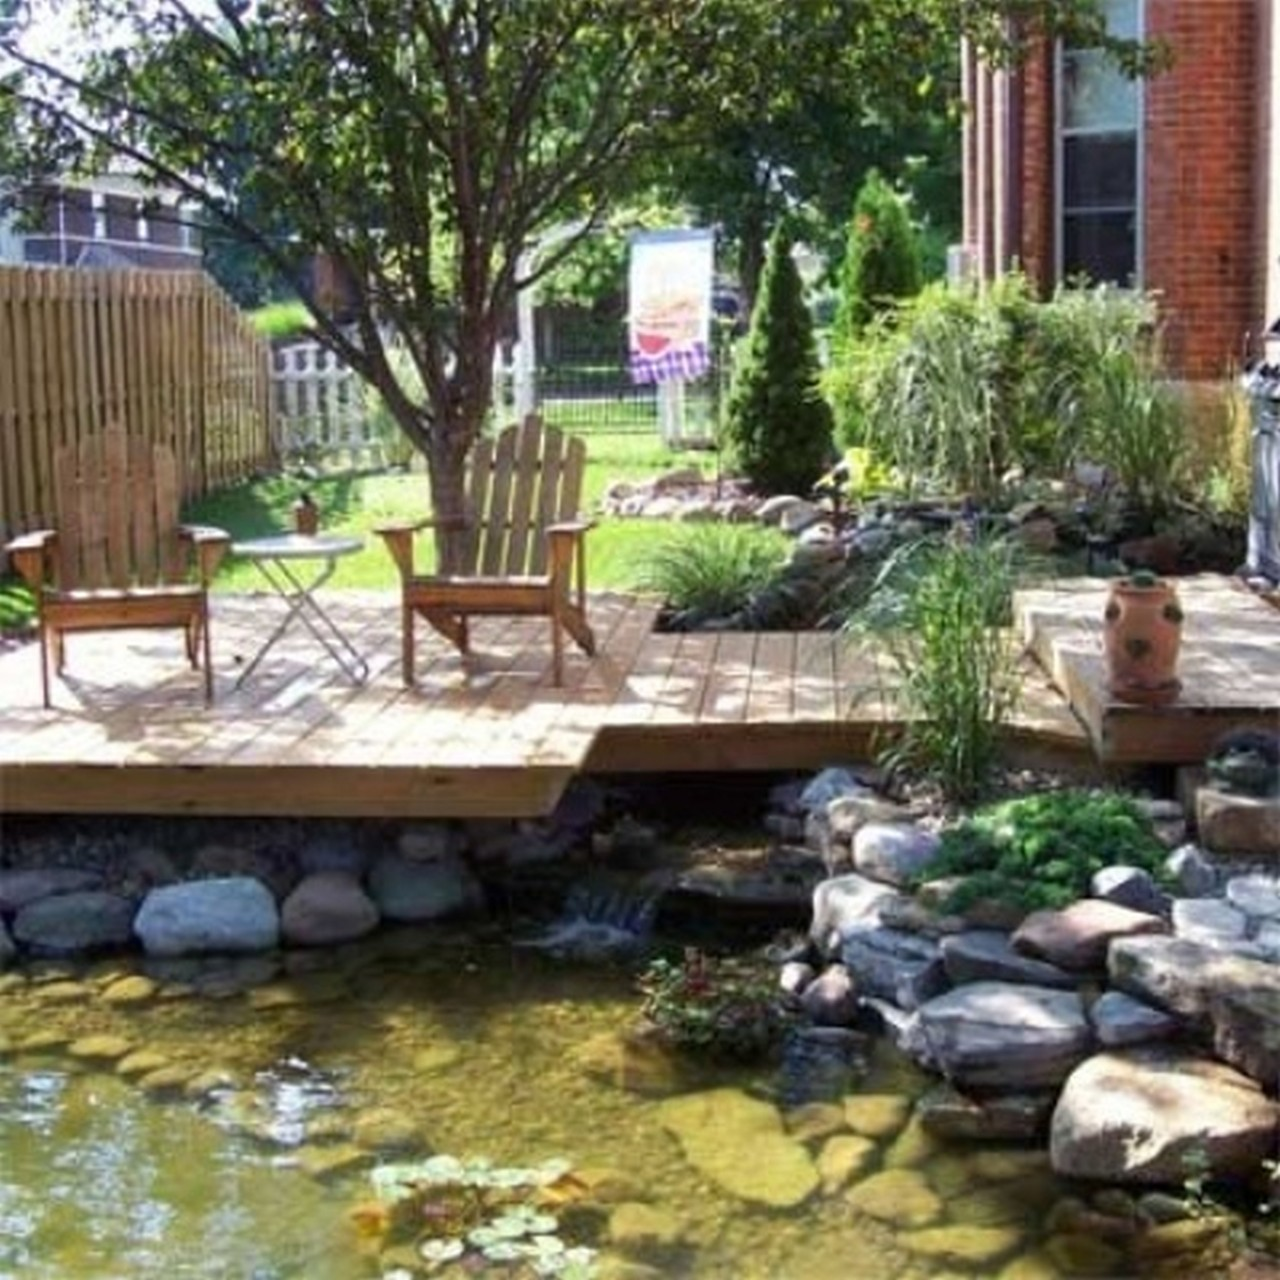 Complete Interesting Flower Garden Ideas with Wooden Deck and Pond Like Pool near Oak Chairs and Stones